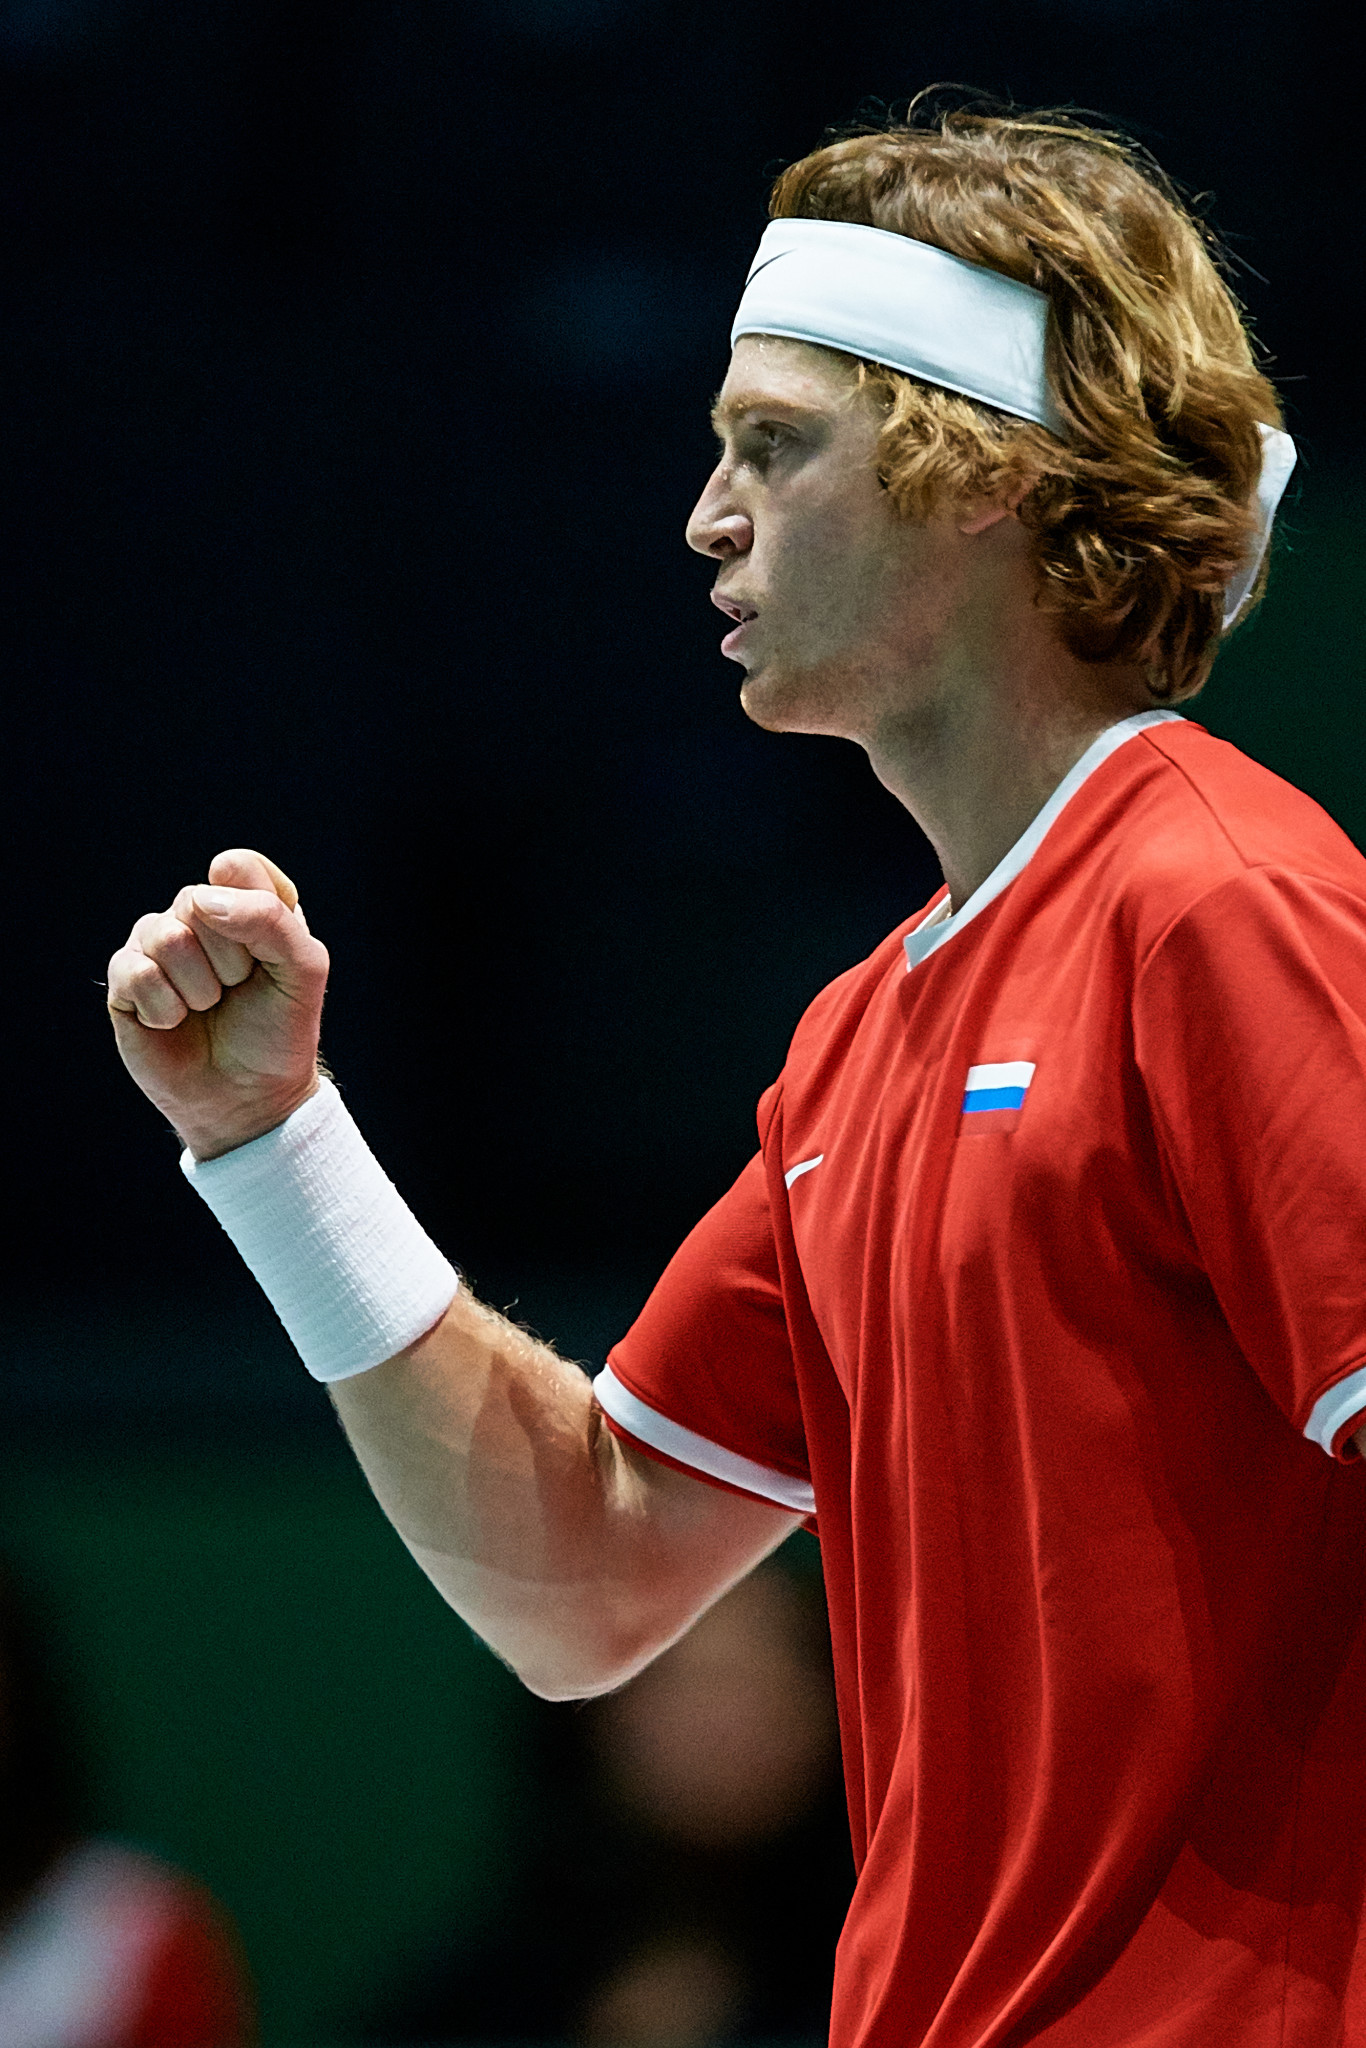 Defending champions Croatia defeated as Rublev and Khachanov rule at Davis Cup Finals